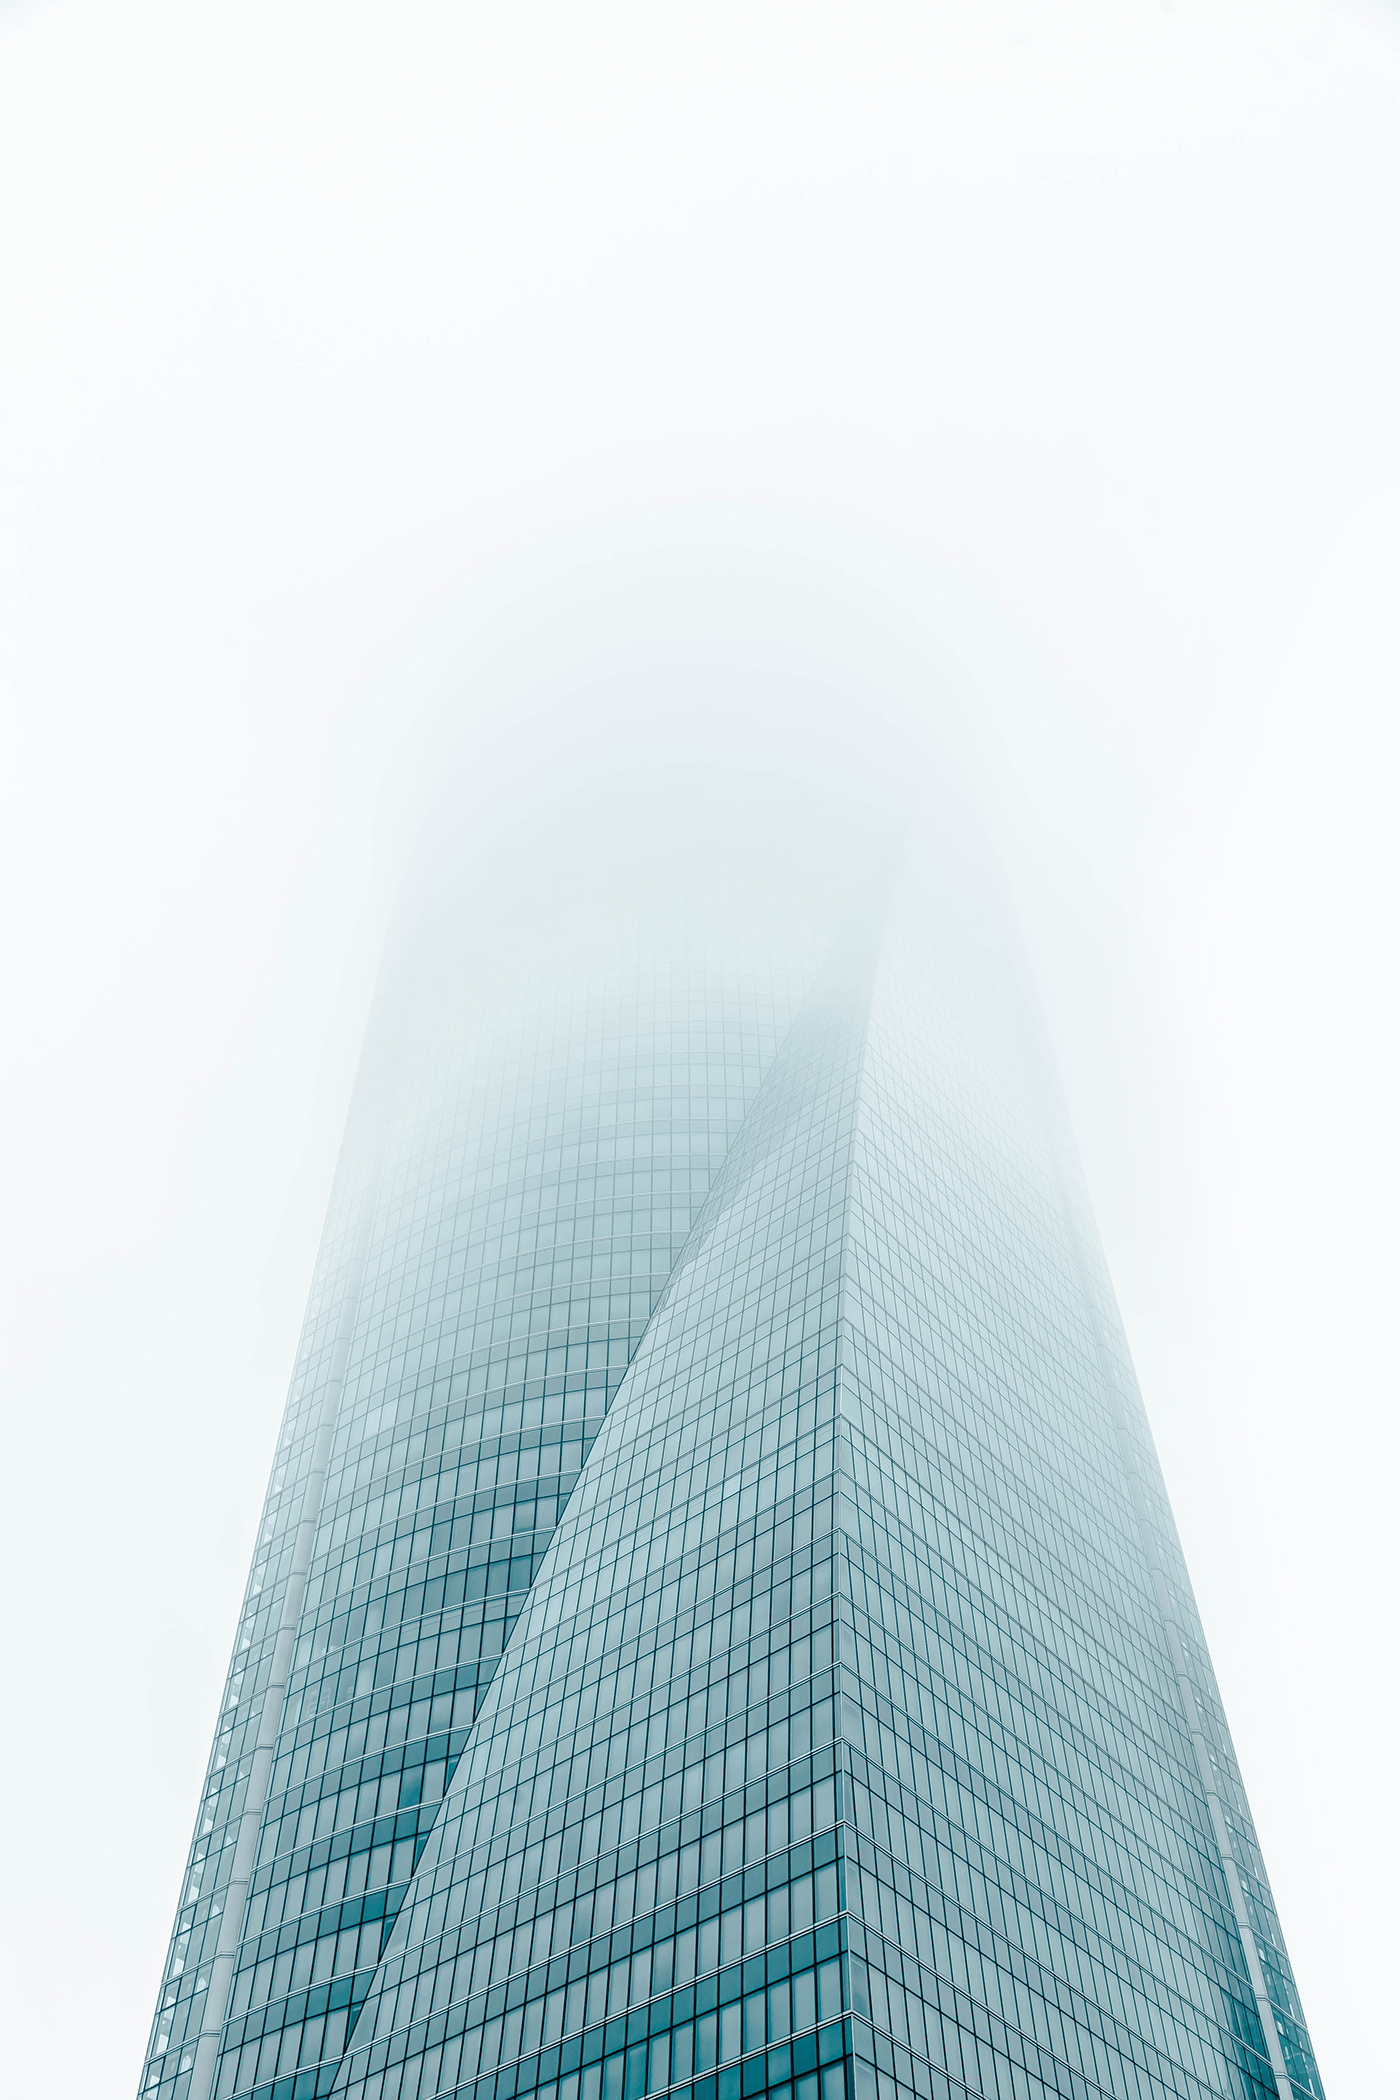 Mysterious Pictures of Madrid Architecture in the Fog